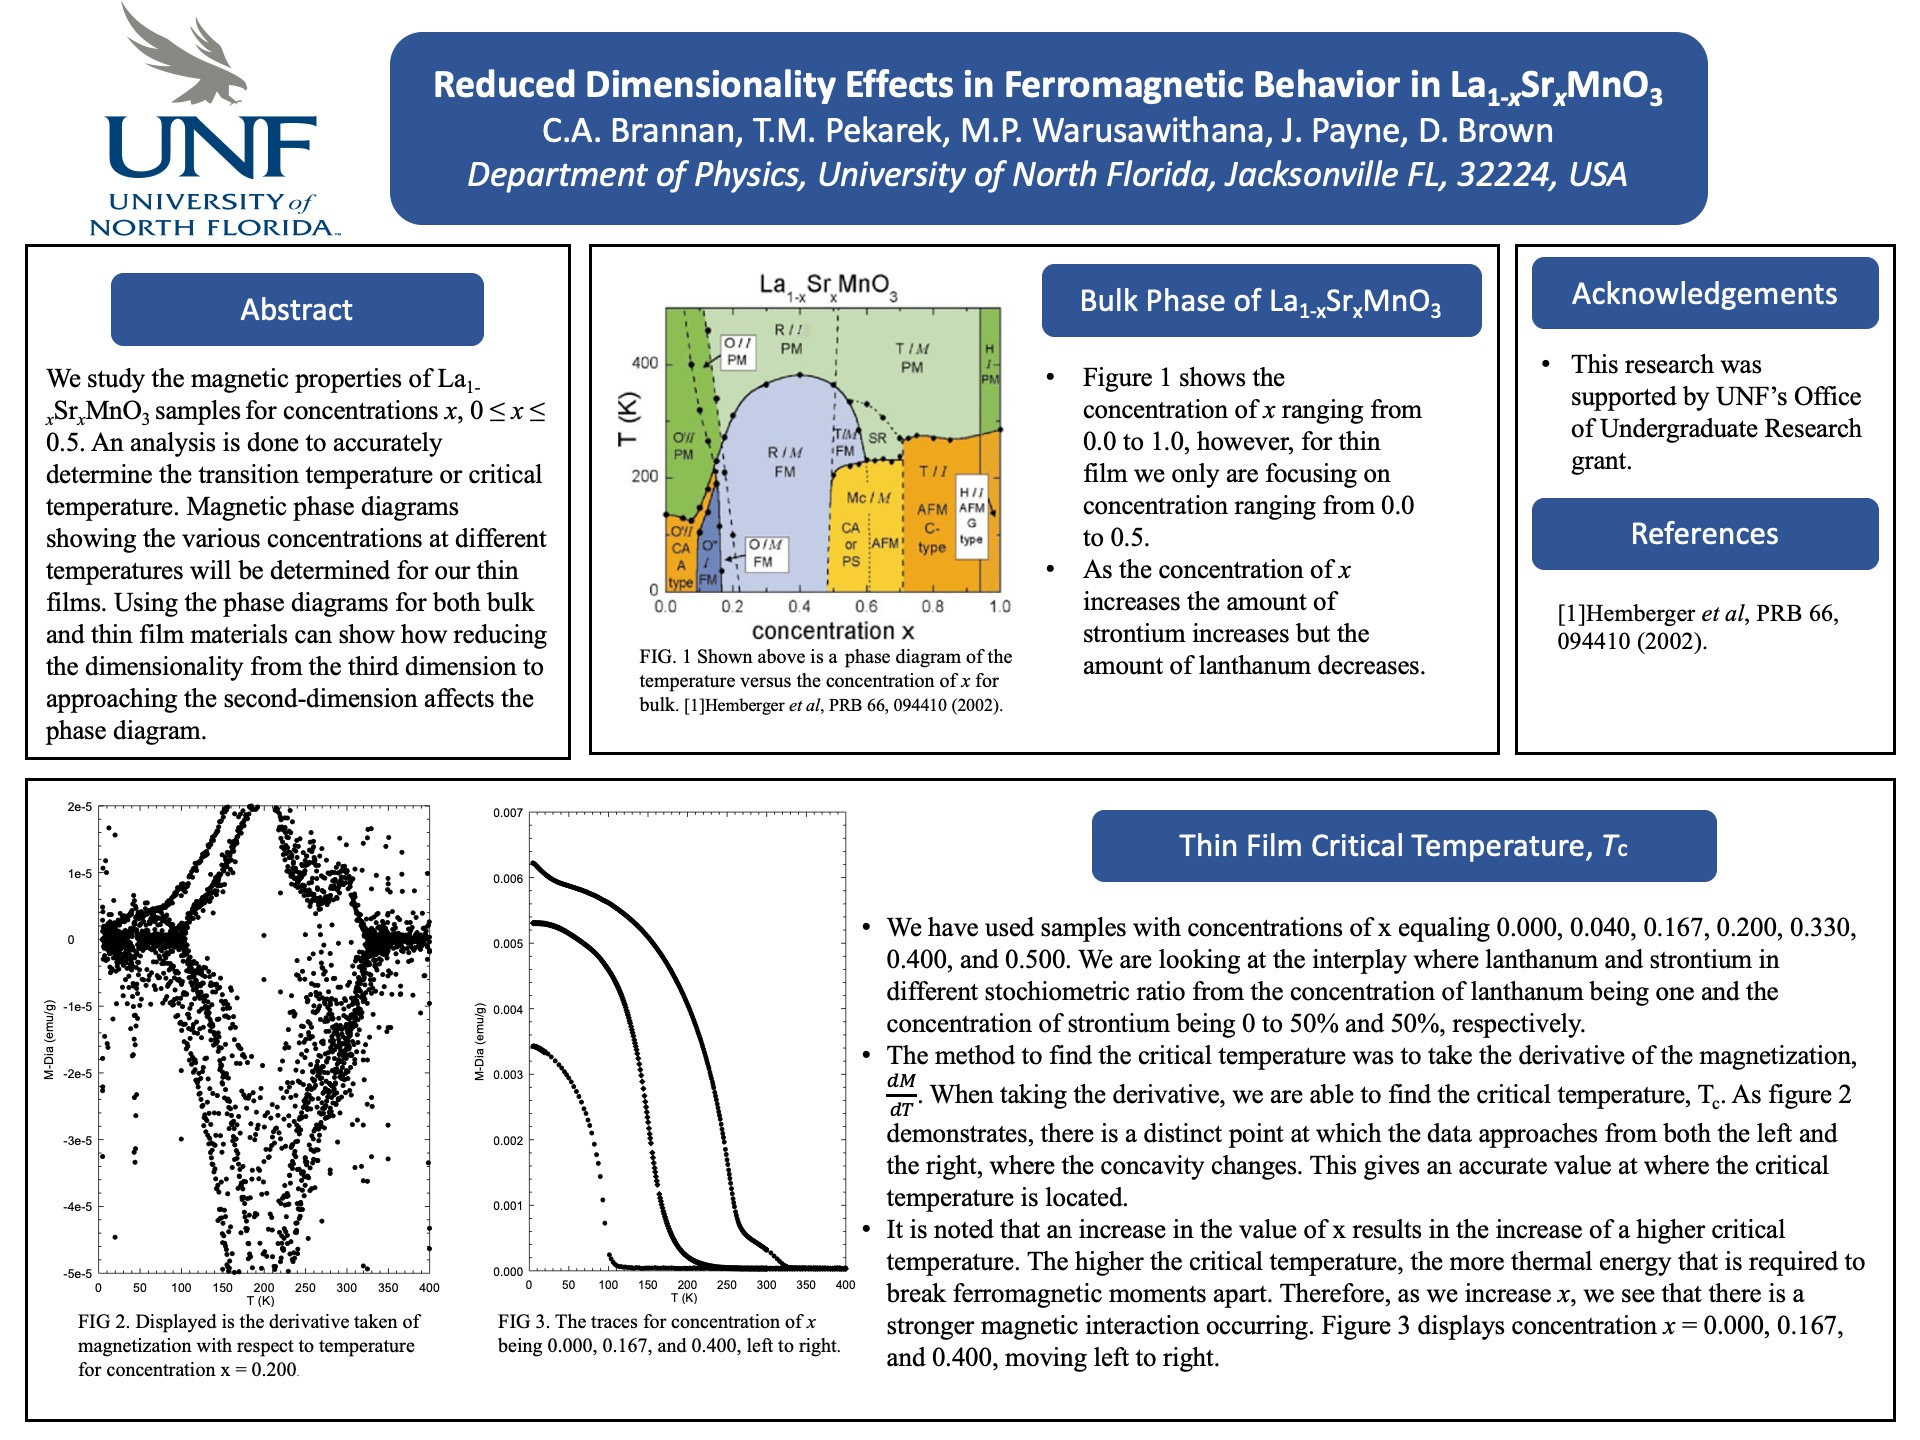 Reduced Dimensionality Effects in Ferromagnetic Behavior in La1-xSrxMnO3 poster